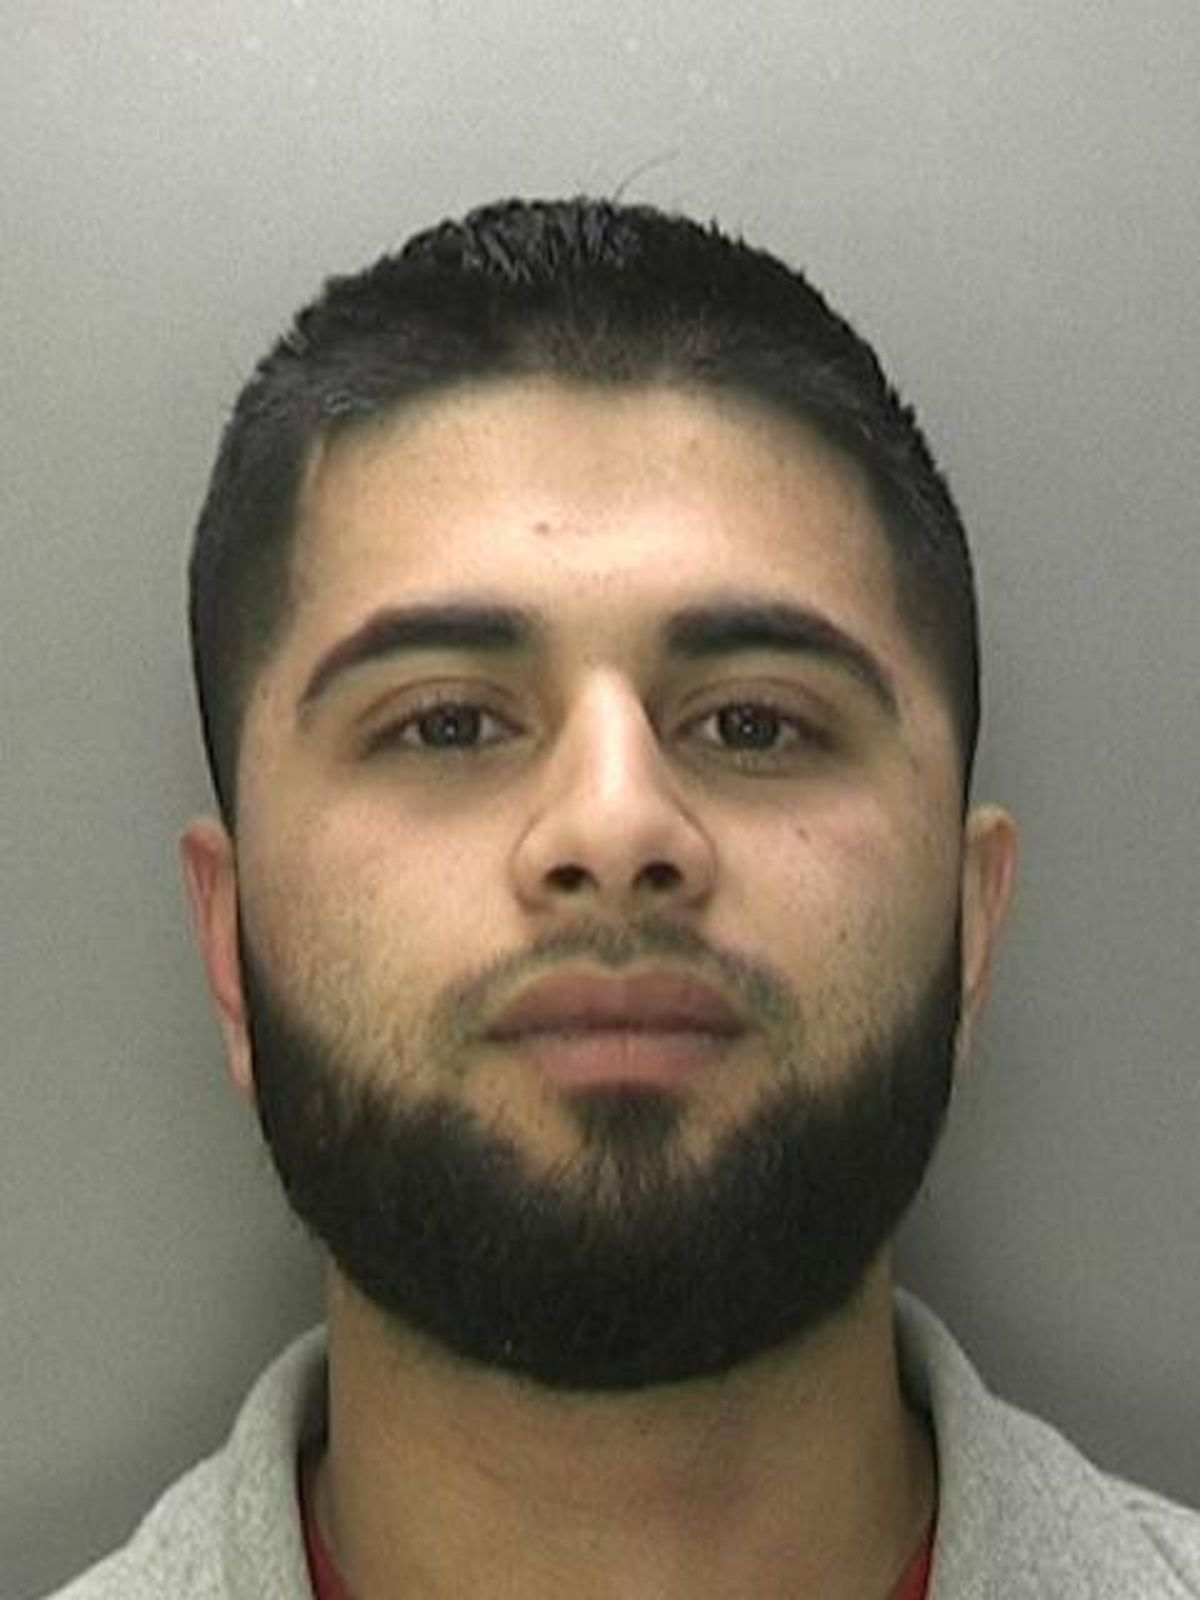 Sikandar Farooq was jailed for five years after being found guilty of conspiracy to commit burglary, conspiracy to handle stolen goods, and handling a stolen VW Golf VRM